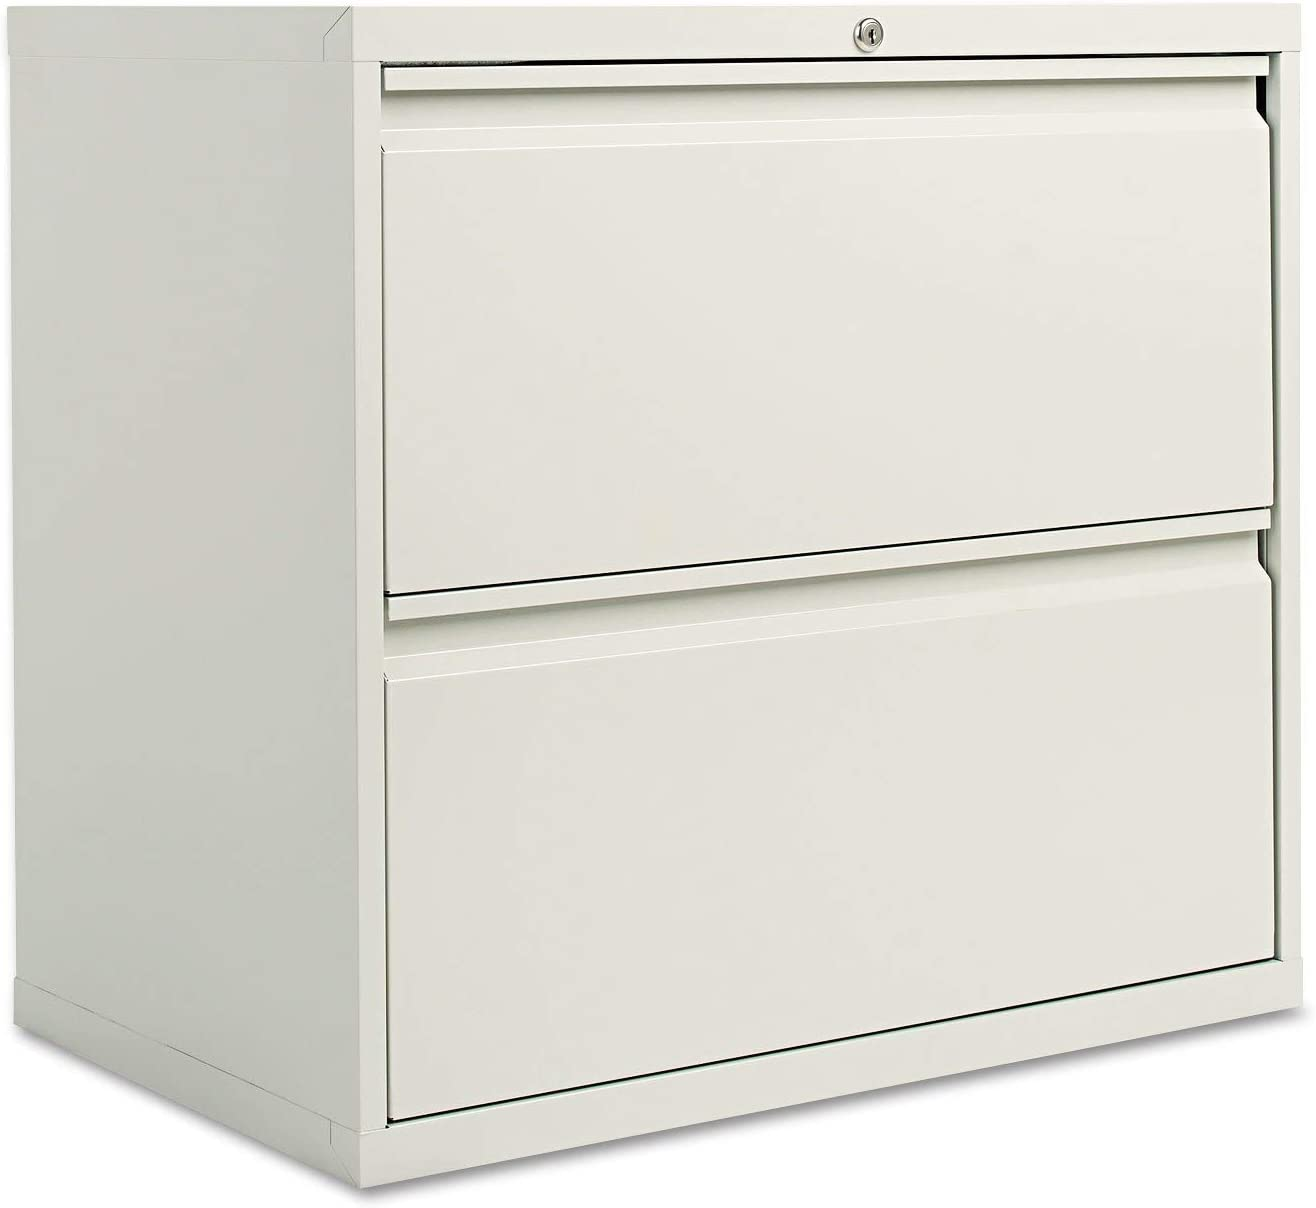 Amazon Com Alera Lf3029lg Two Drawer Lateral File Cabinet 30w X 19 1 4d X 28 3 8h Light Gray Office Products